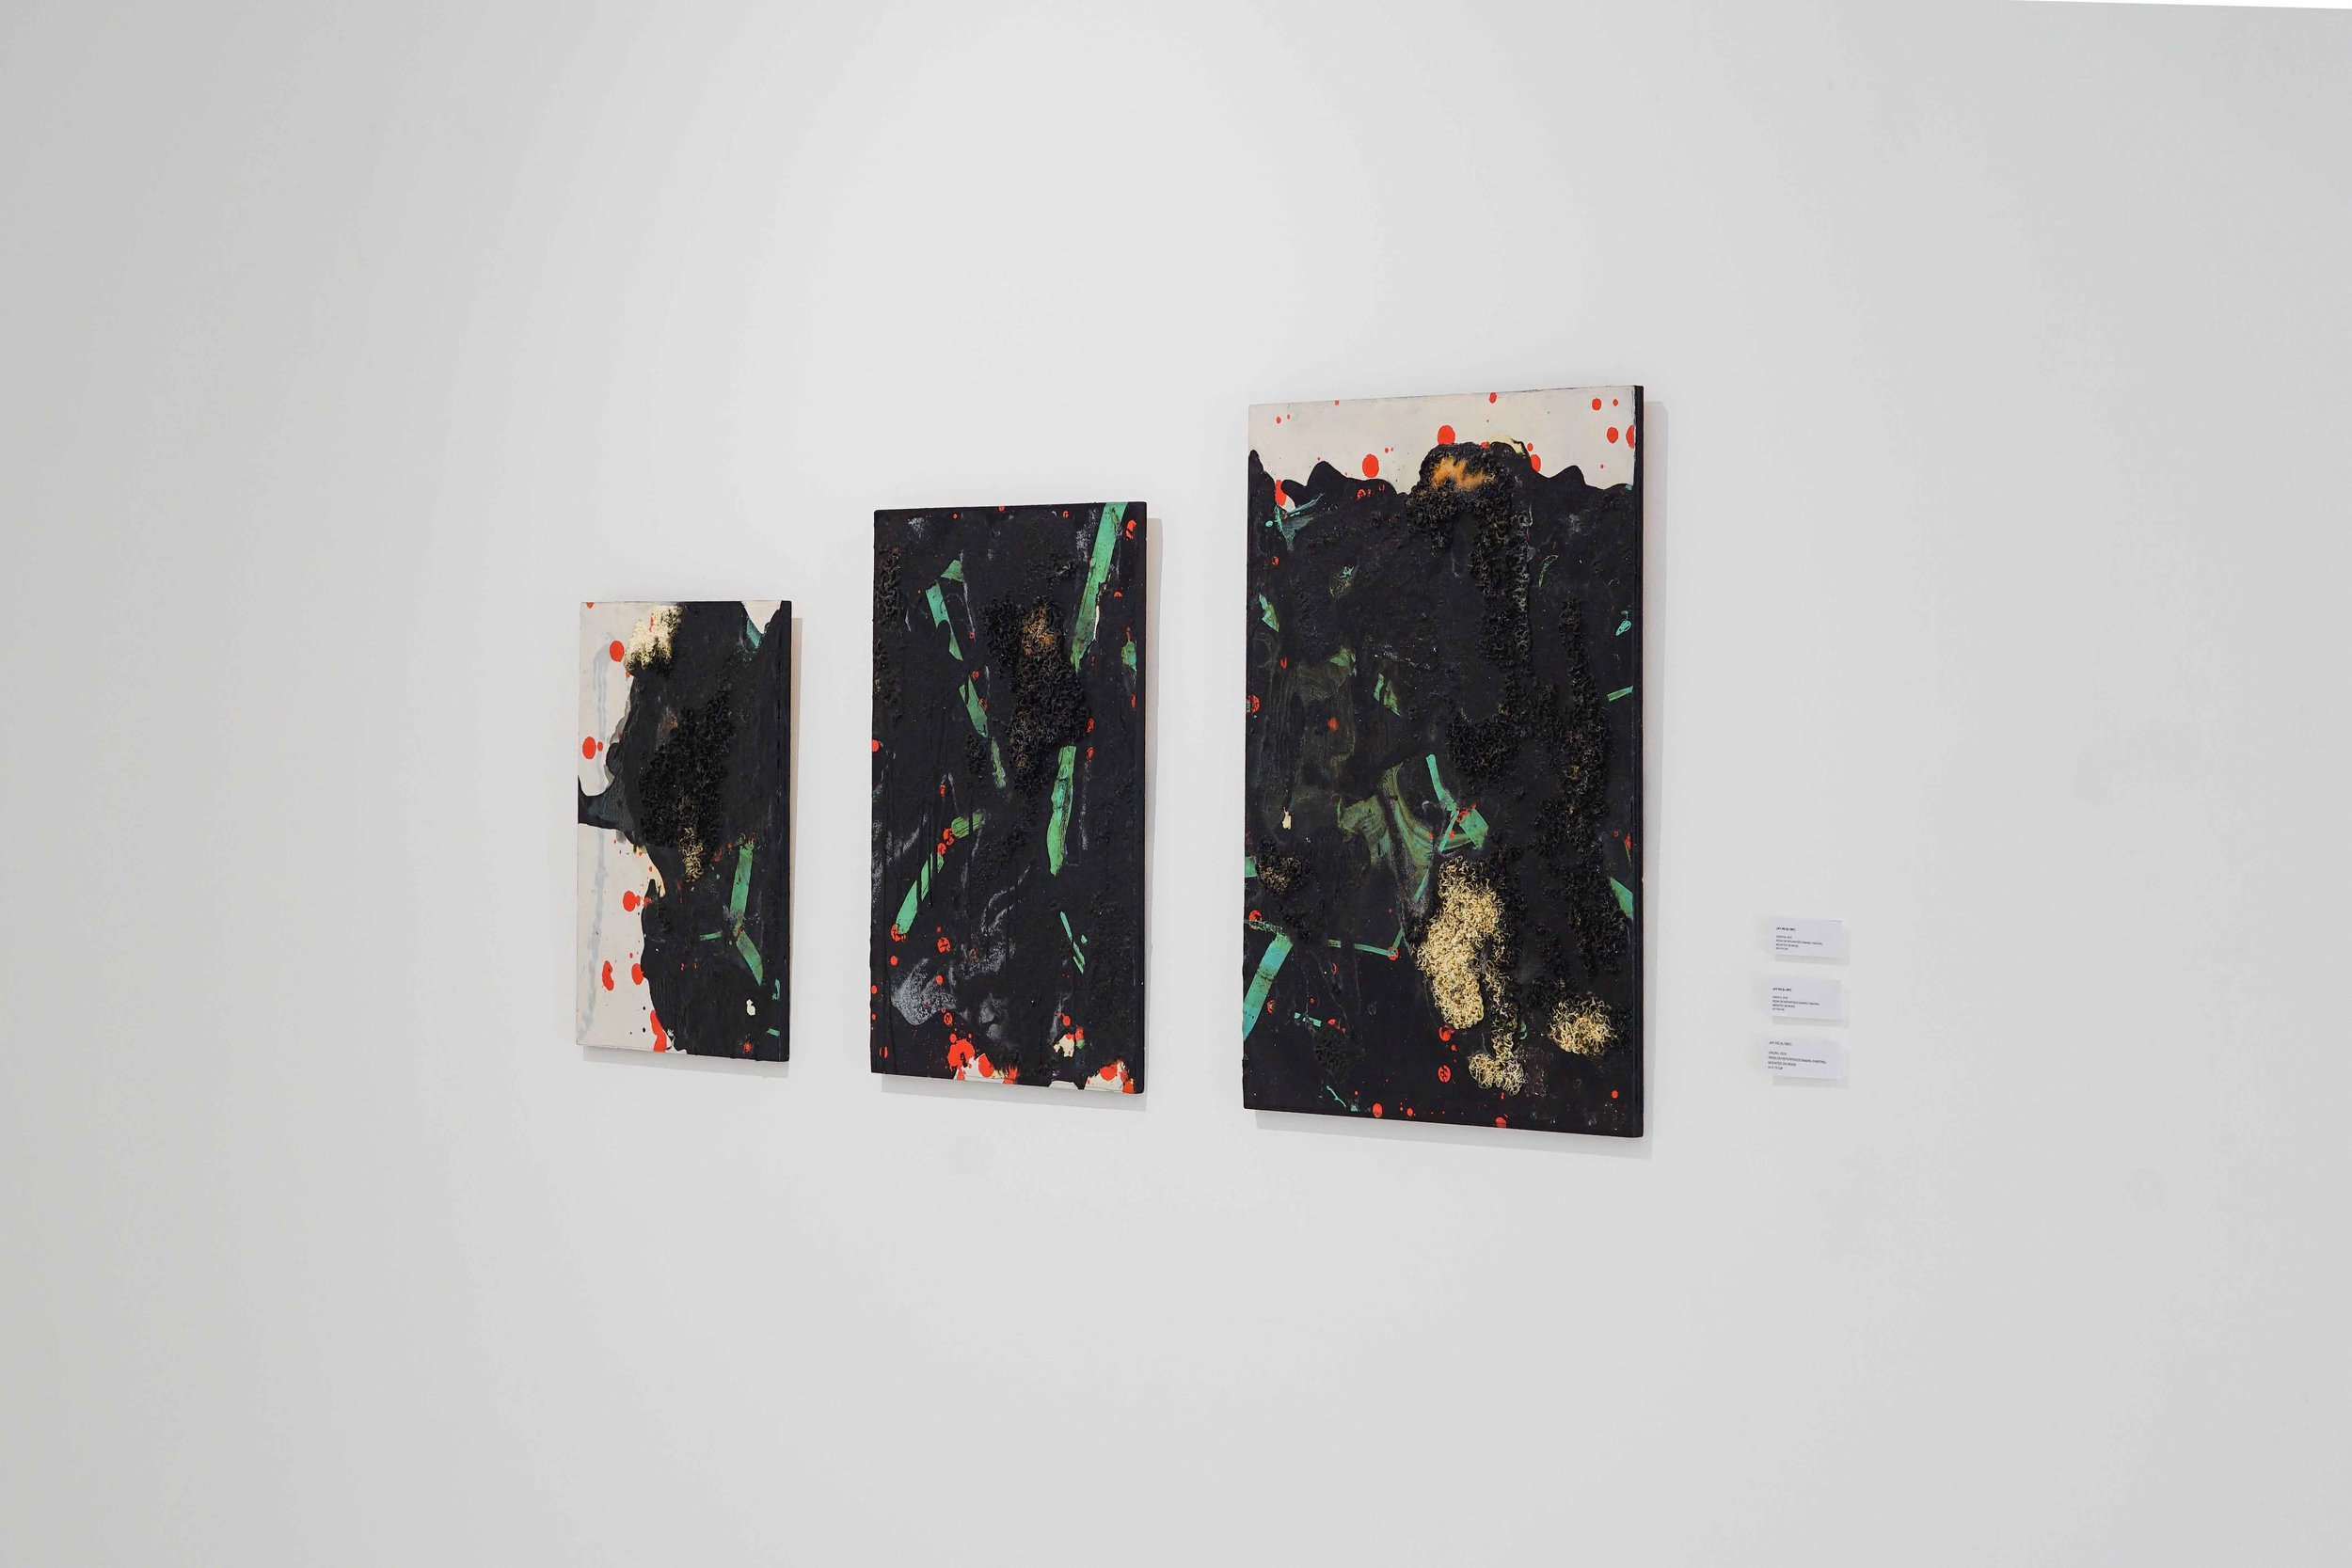 Jay Ho, 'Orion III, II and I' (from left), 2018, resin and gloss paint on canvas panel, dimensions variable. Image courtesy of the artist.